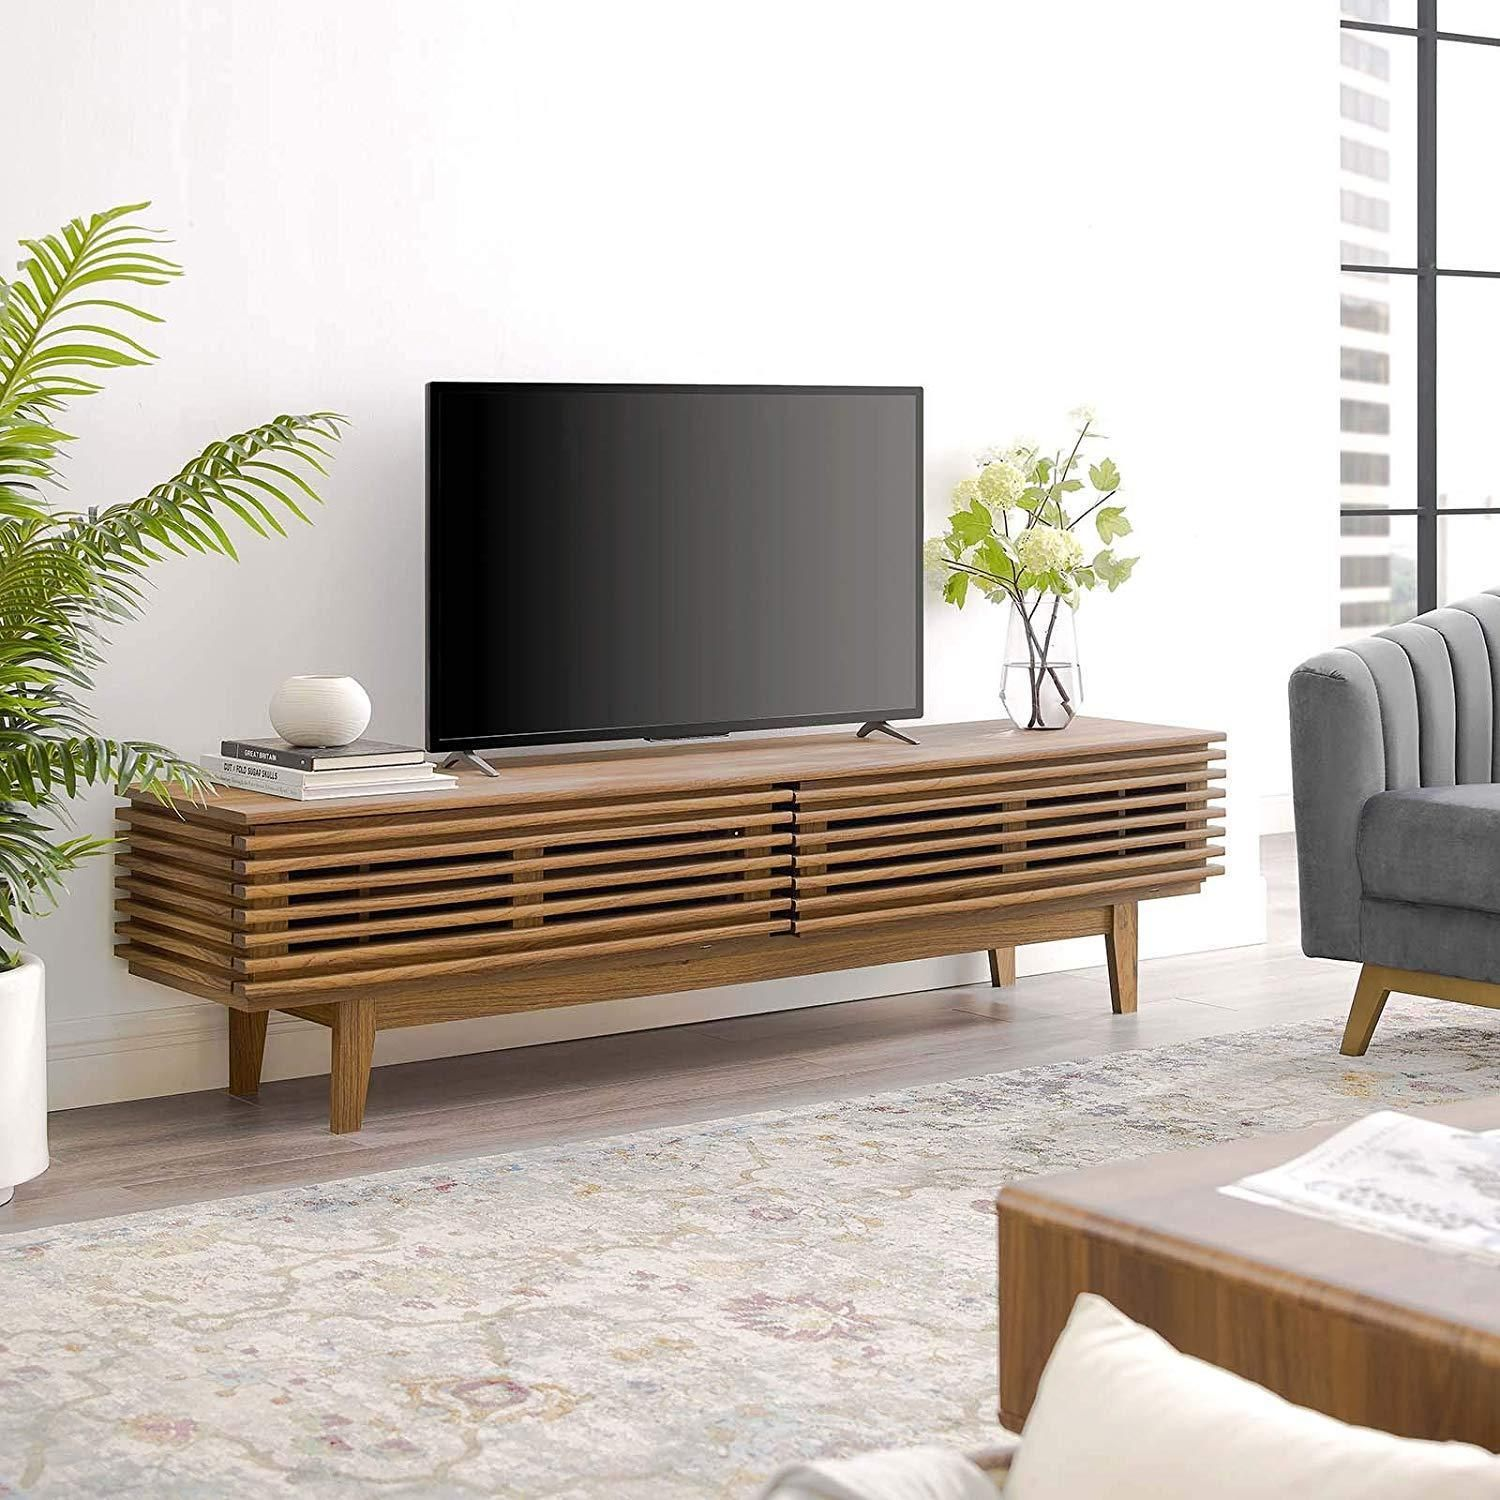 Rennington 71 Tv Stand Modern Living Room Table Low Profile Tv Stand Contemporary Modern Furniture